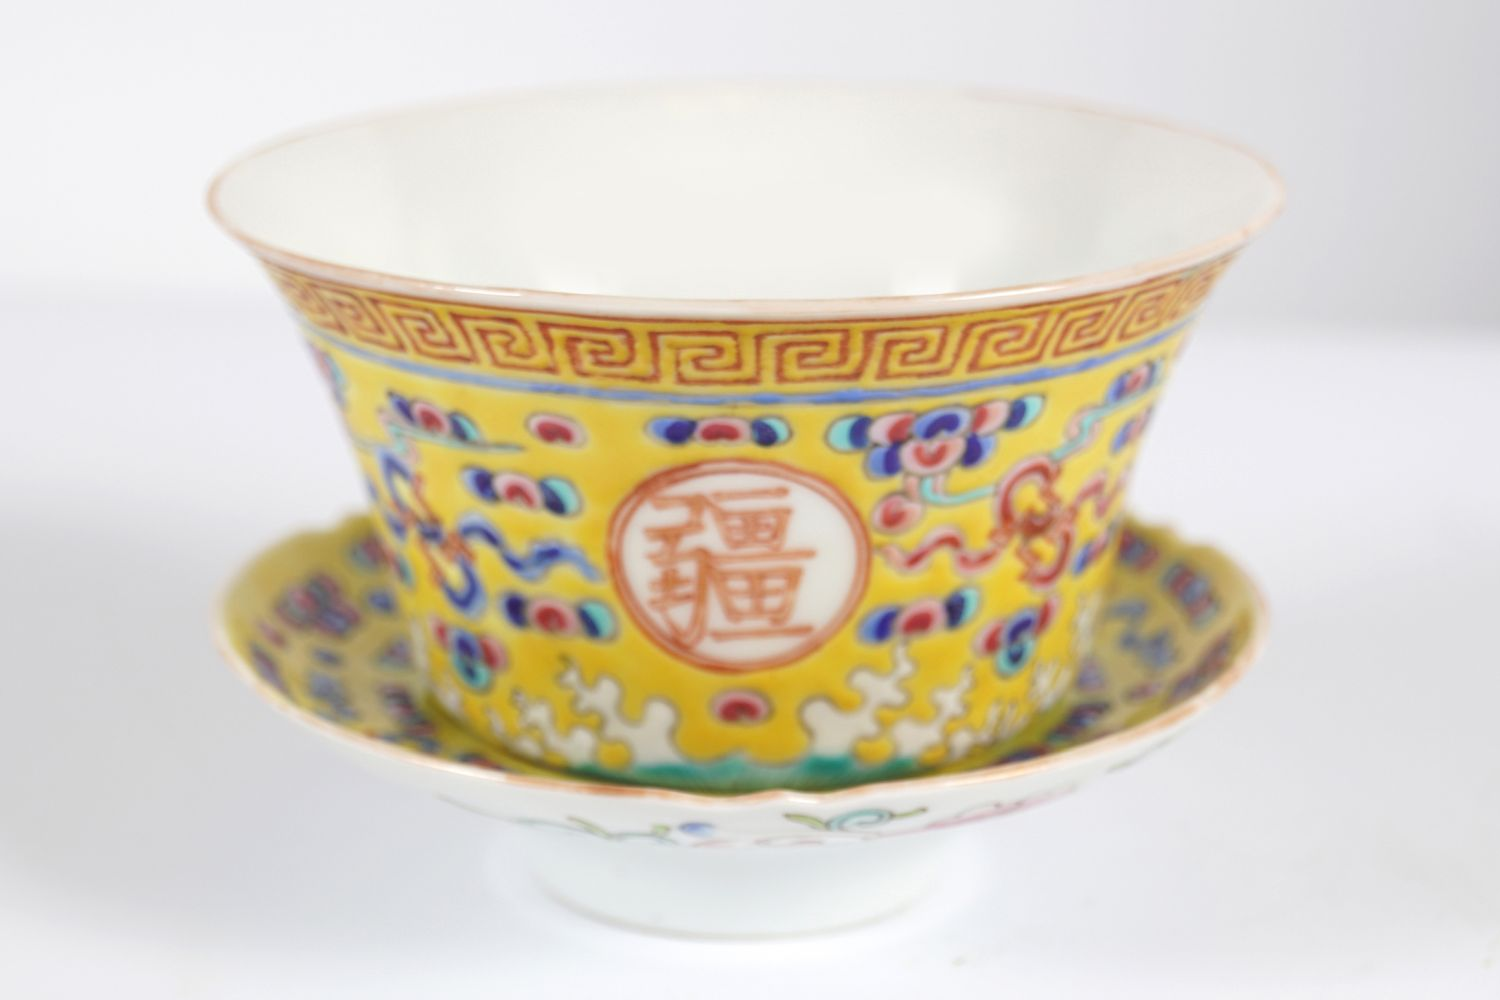 19TH-CENTURY CHINESE FAMILLE ROSE CUP AND SAUCER